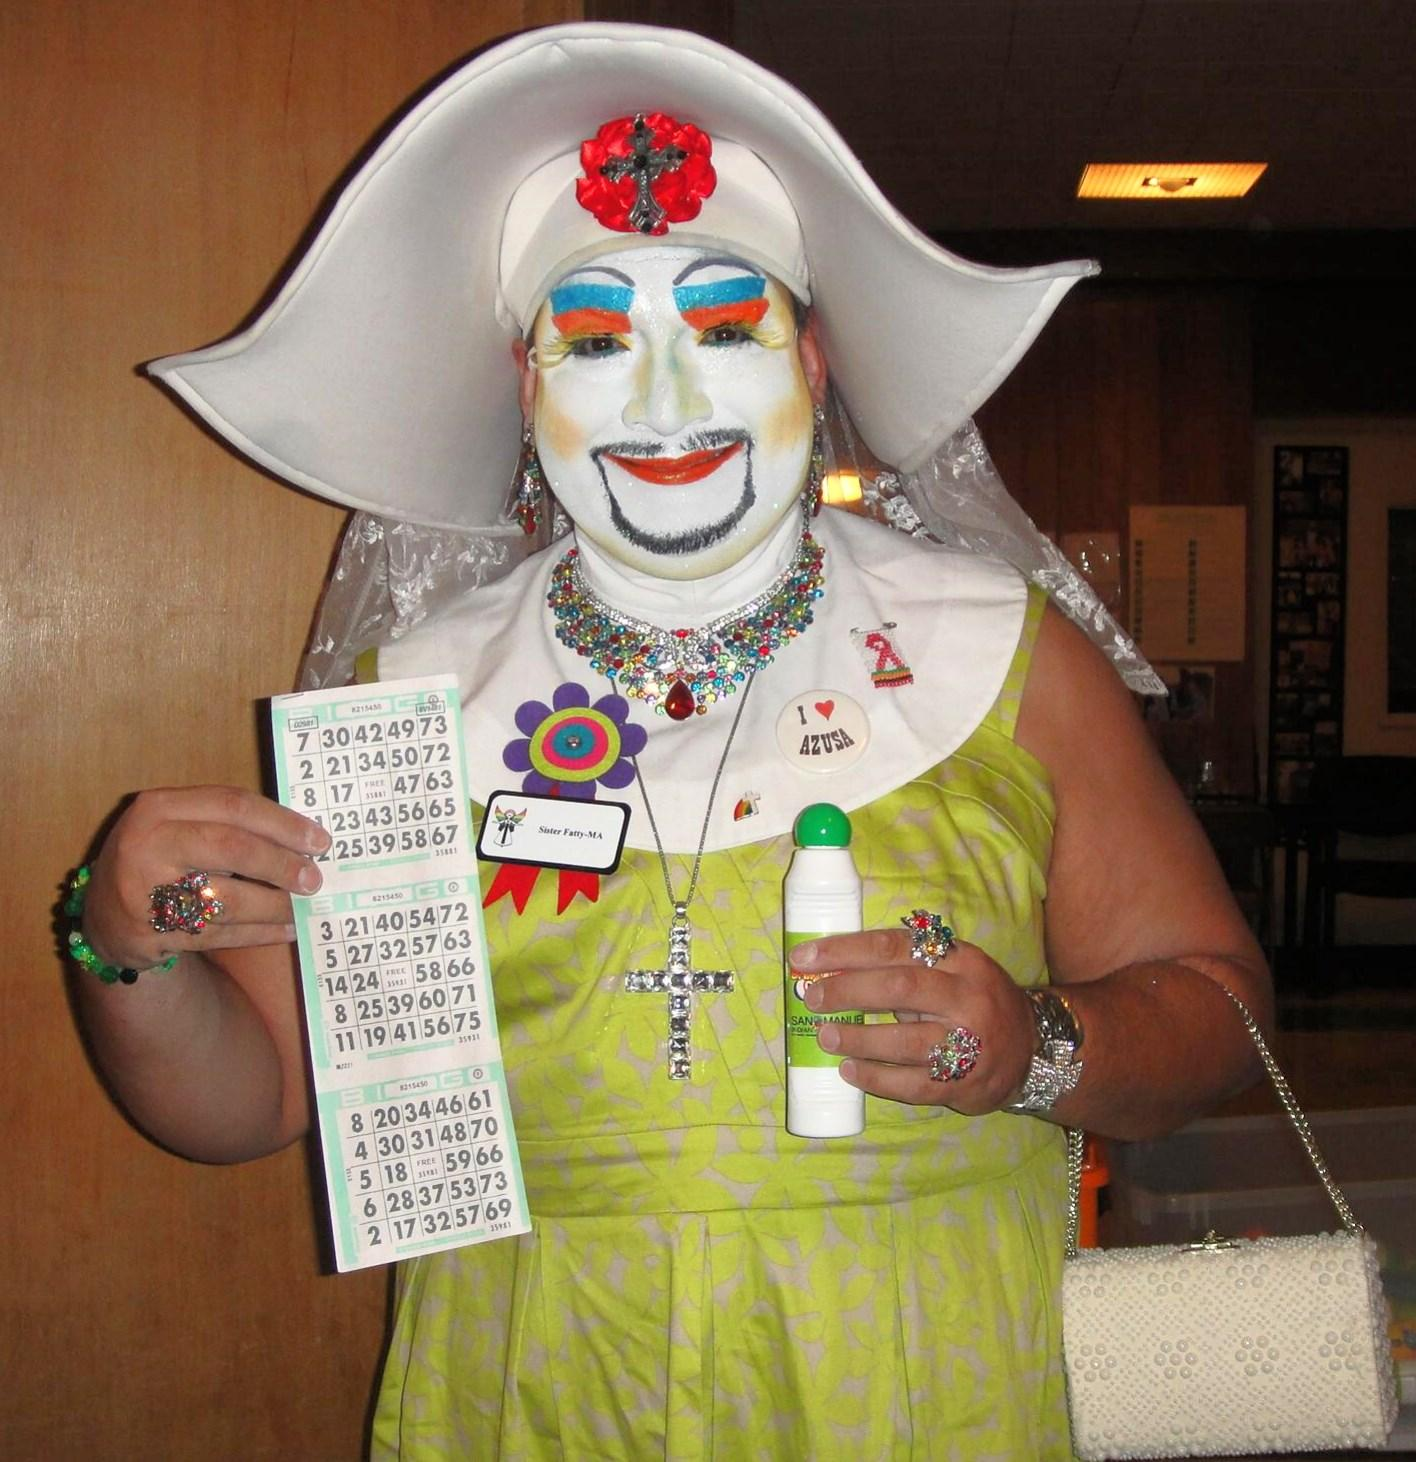 Sister Fatty-Ma, of the Sisters of Perpetual Indulgence, at a charity bingo event at the Westminster Presbyterian Church in Pasadena.